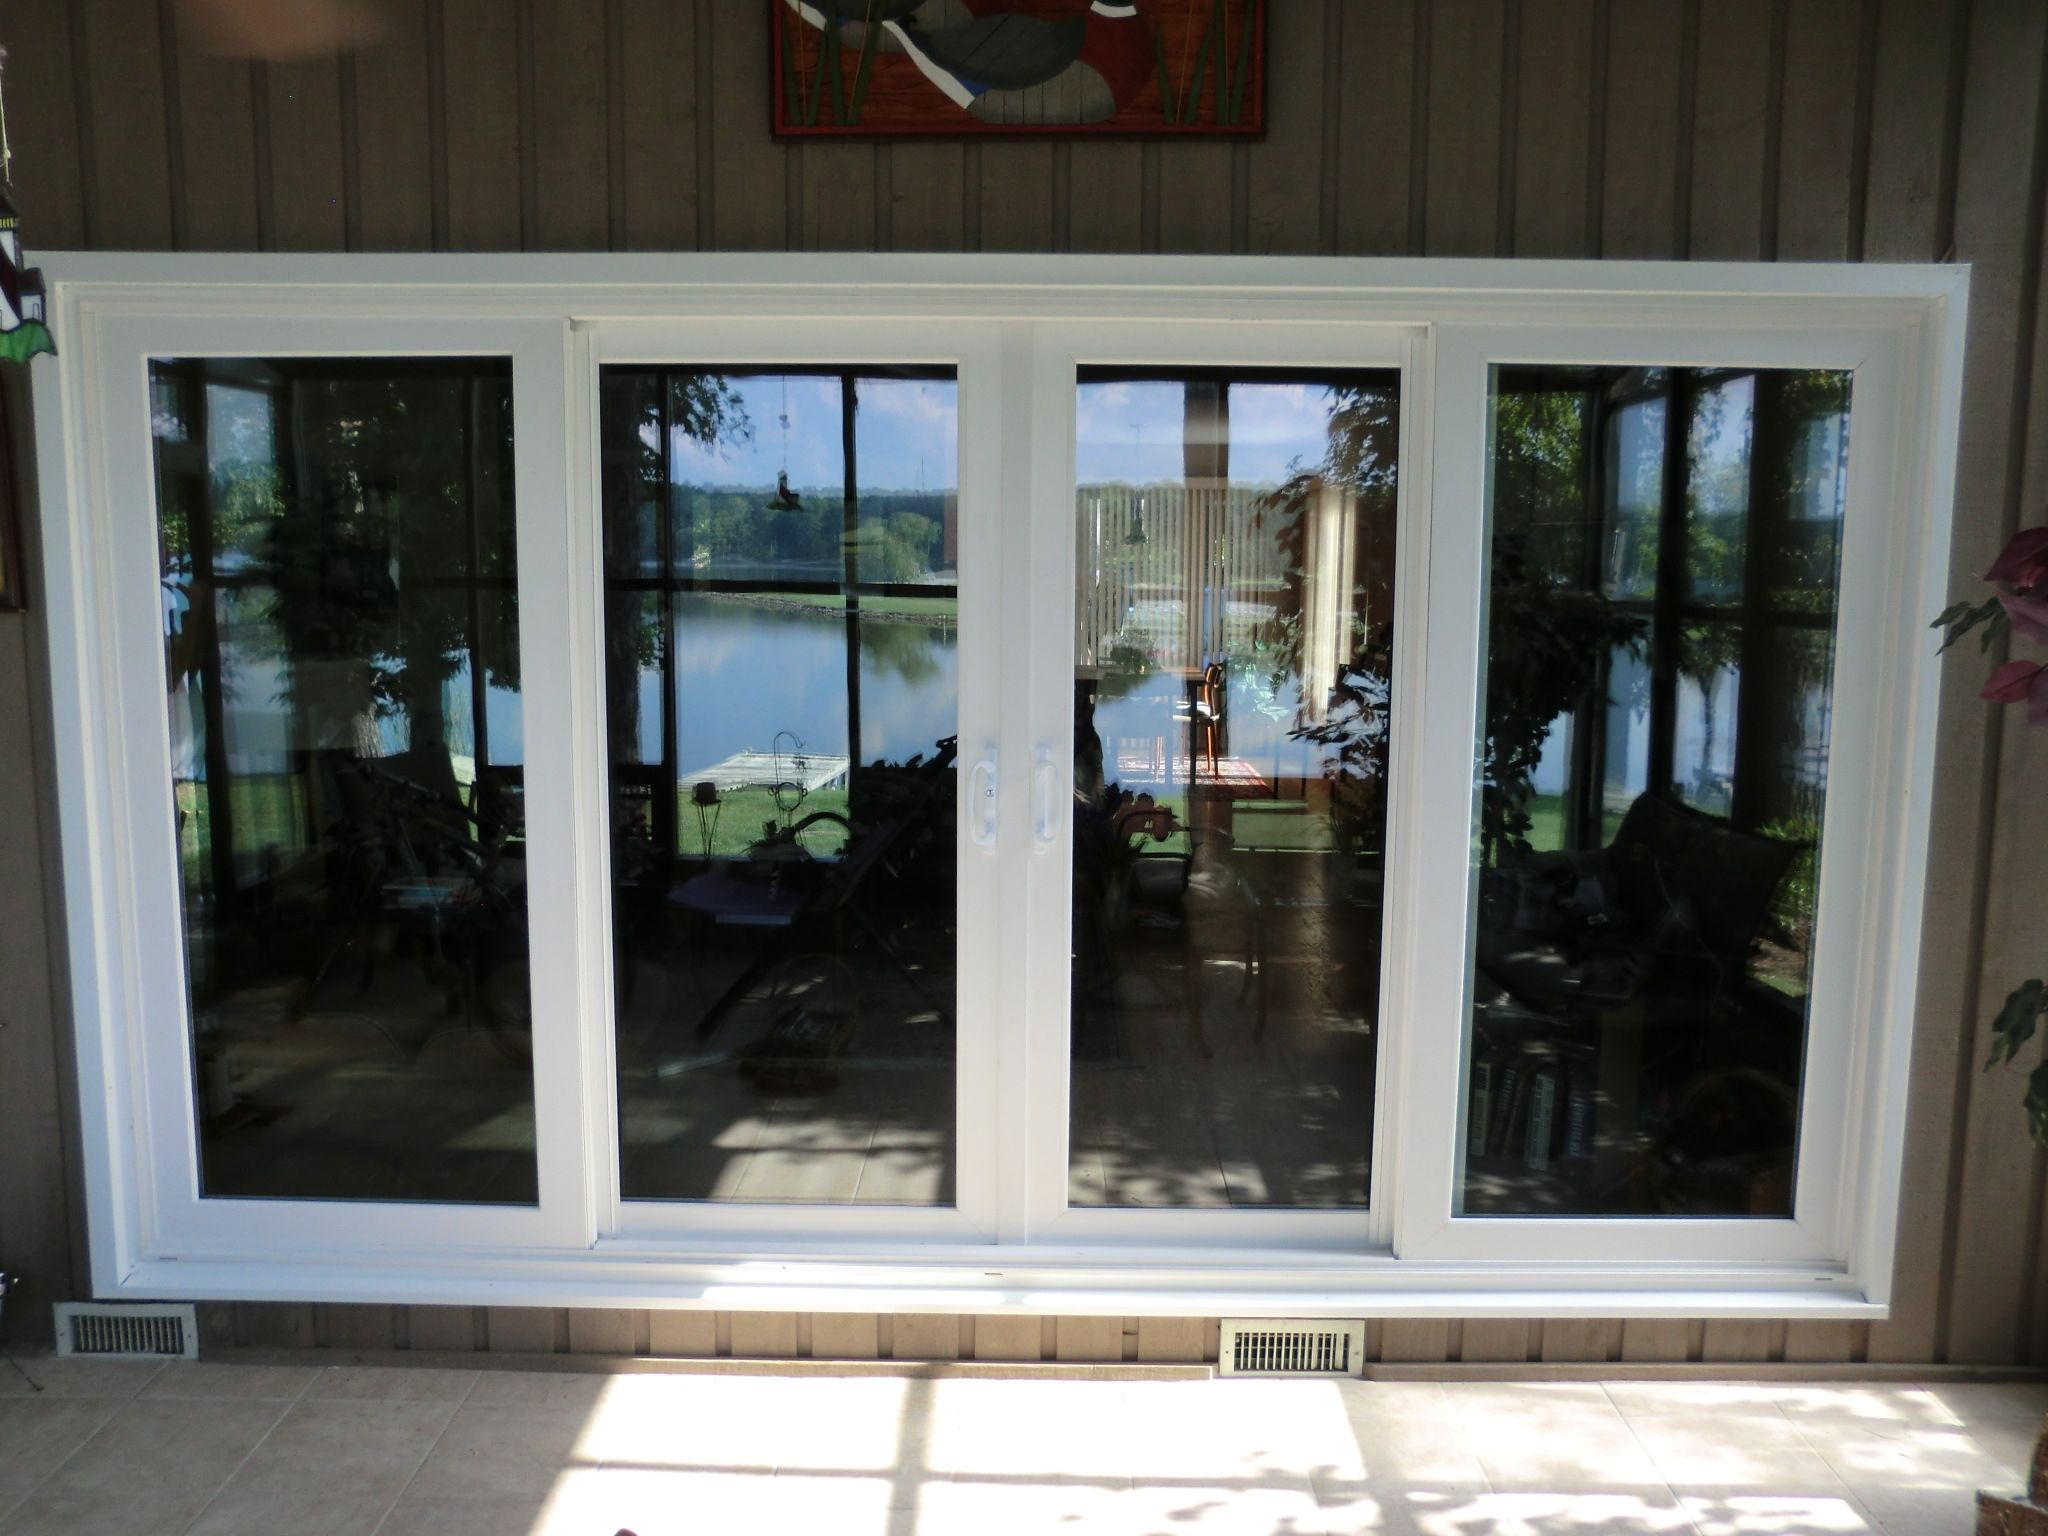 Sliding Patio Doors With Side Panels Sliding Doors Exterior Sliding Glass Doors Patio Sliding French Doors